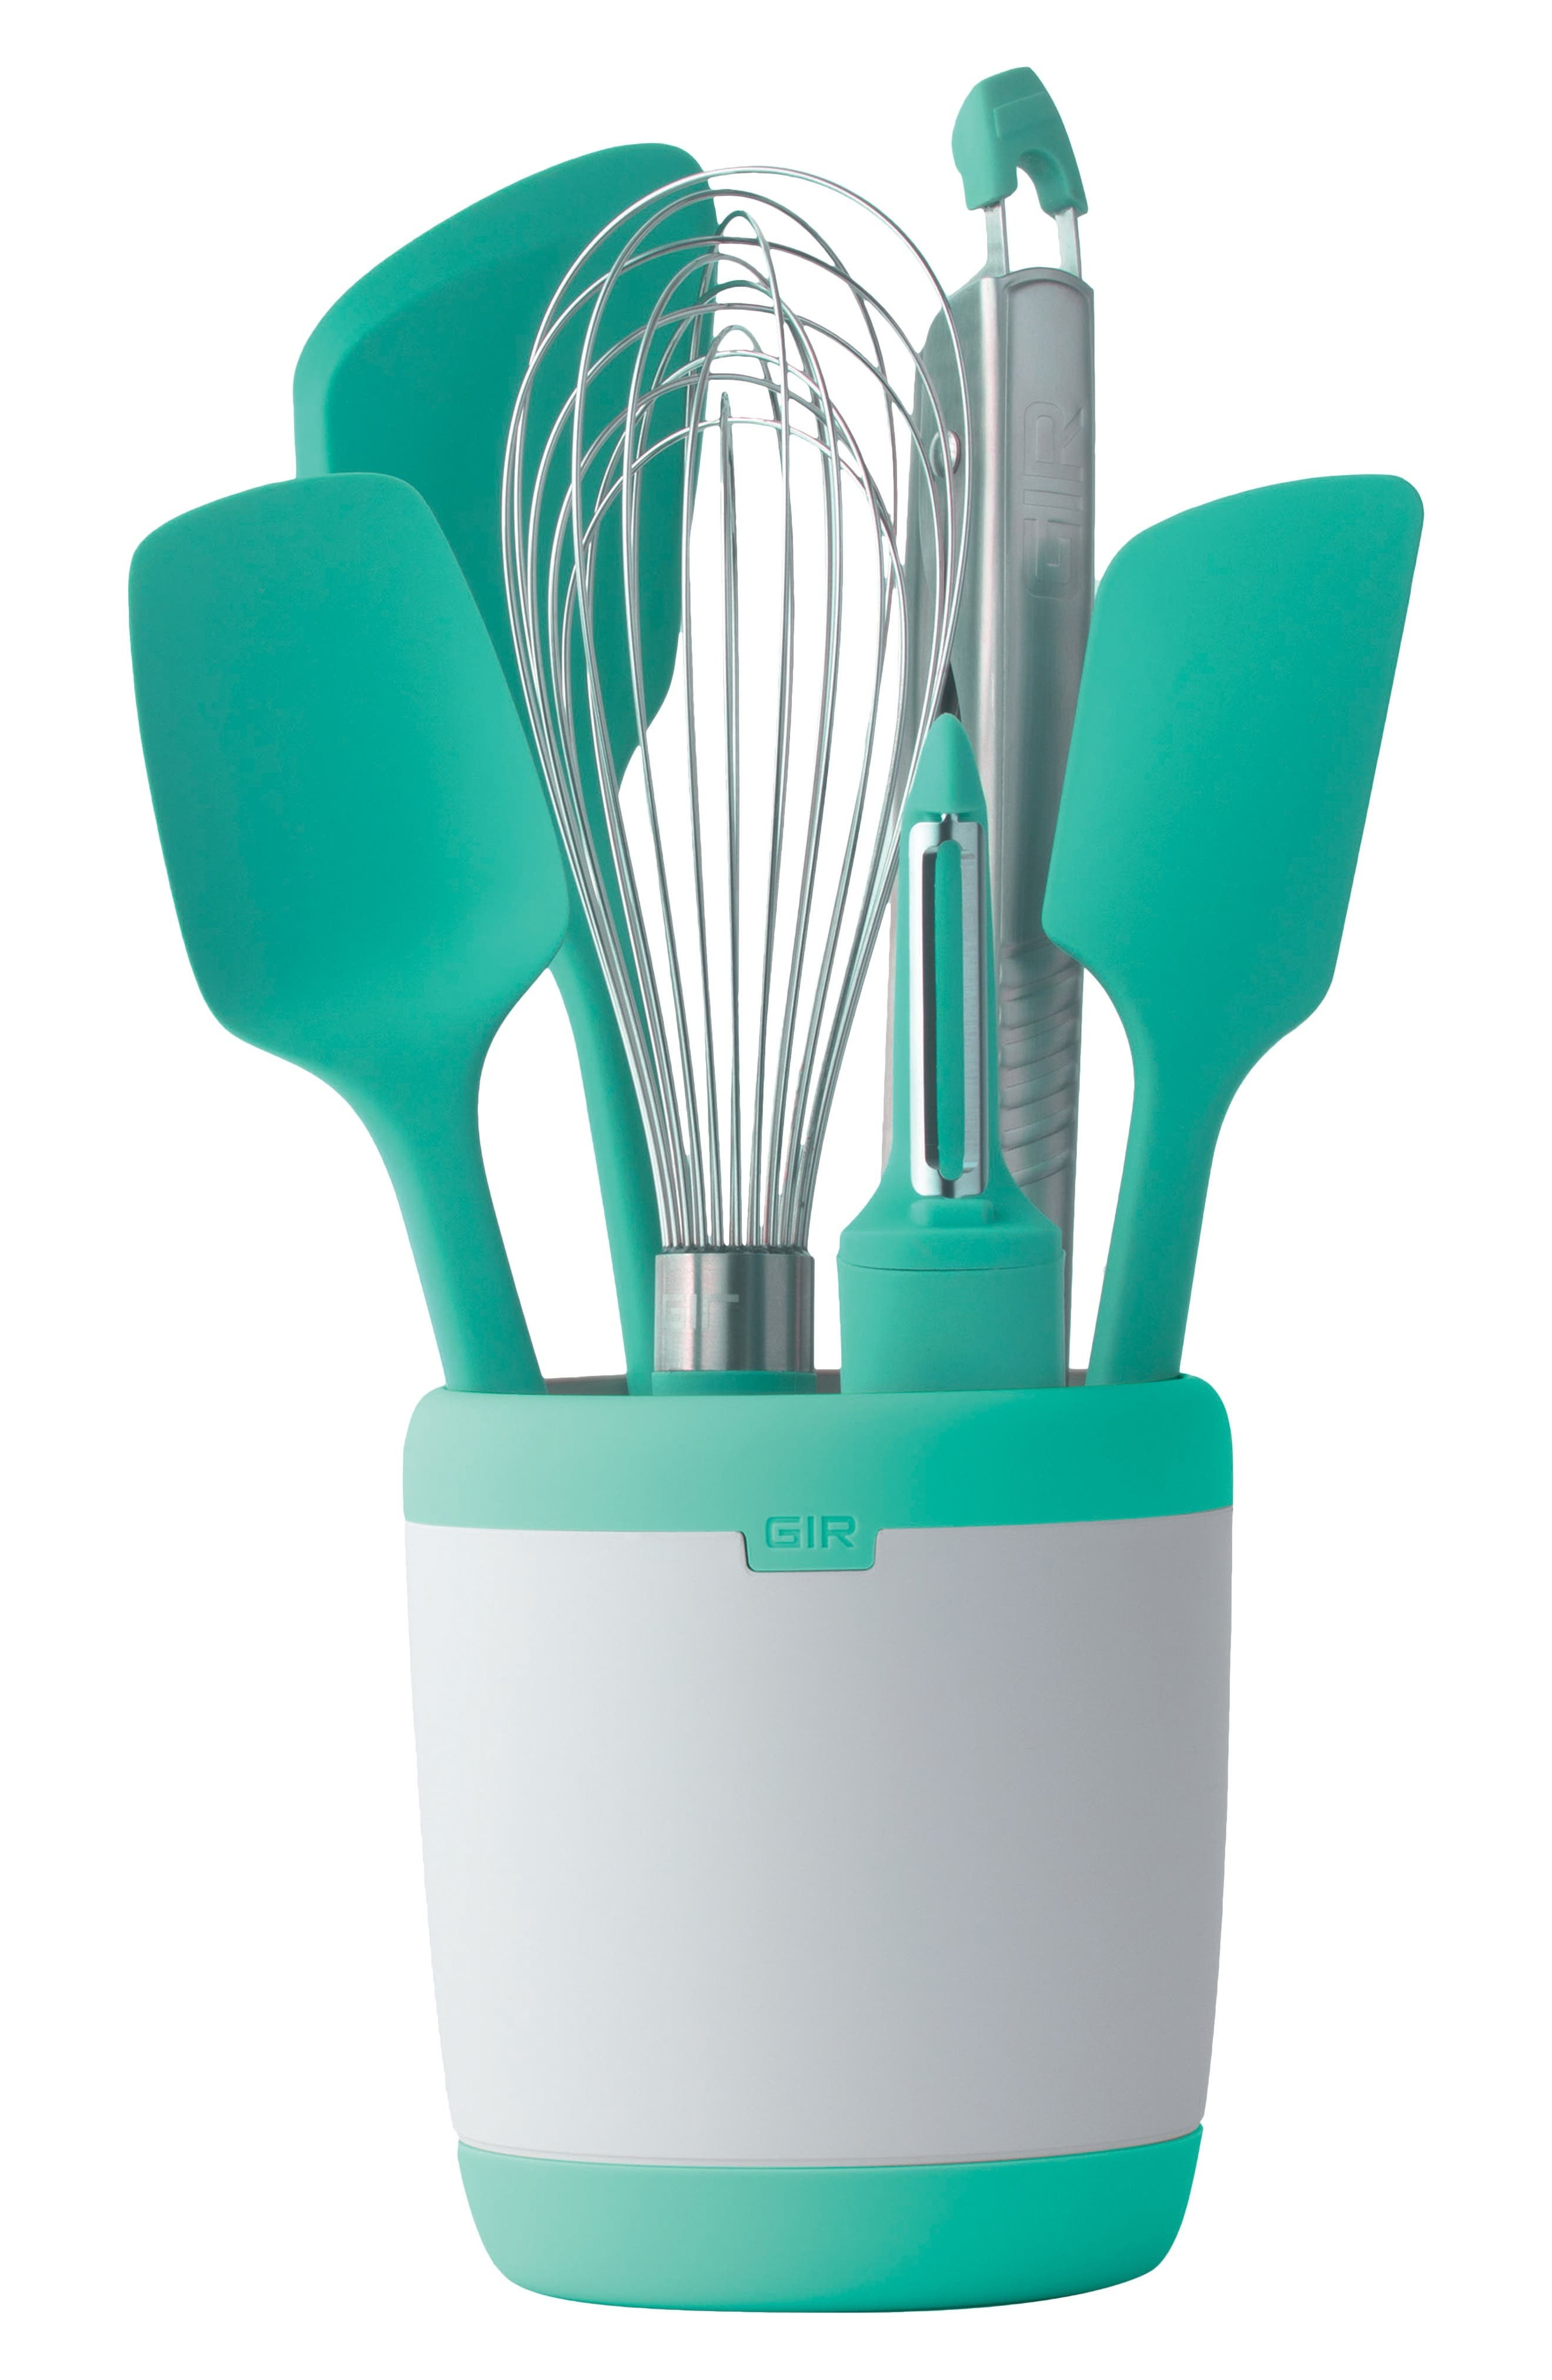 mint colored kitchen tool set in a container